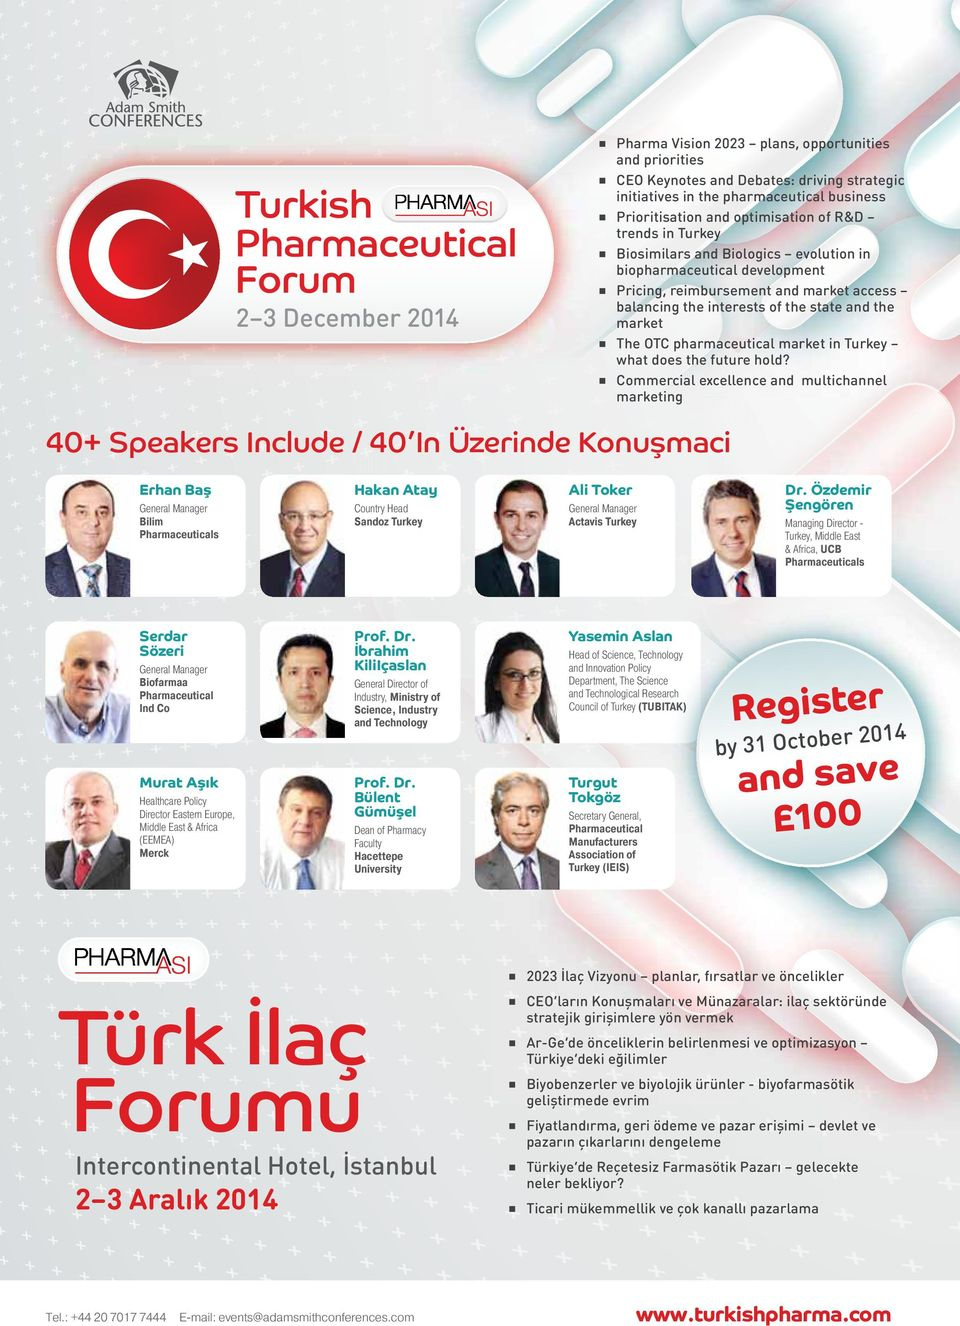 pharmaceutical market in Turkey what does the future hold?